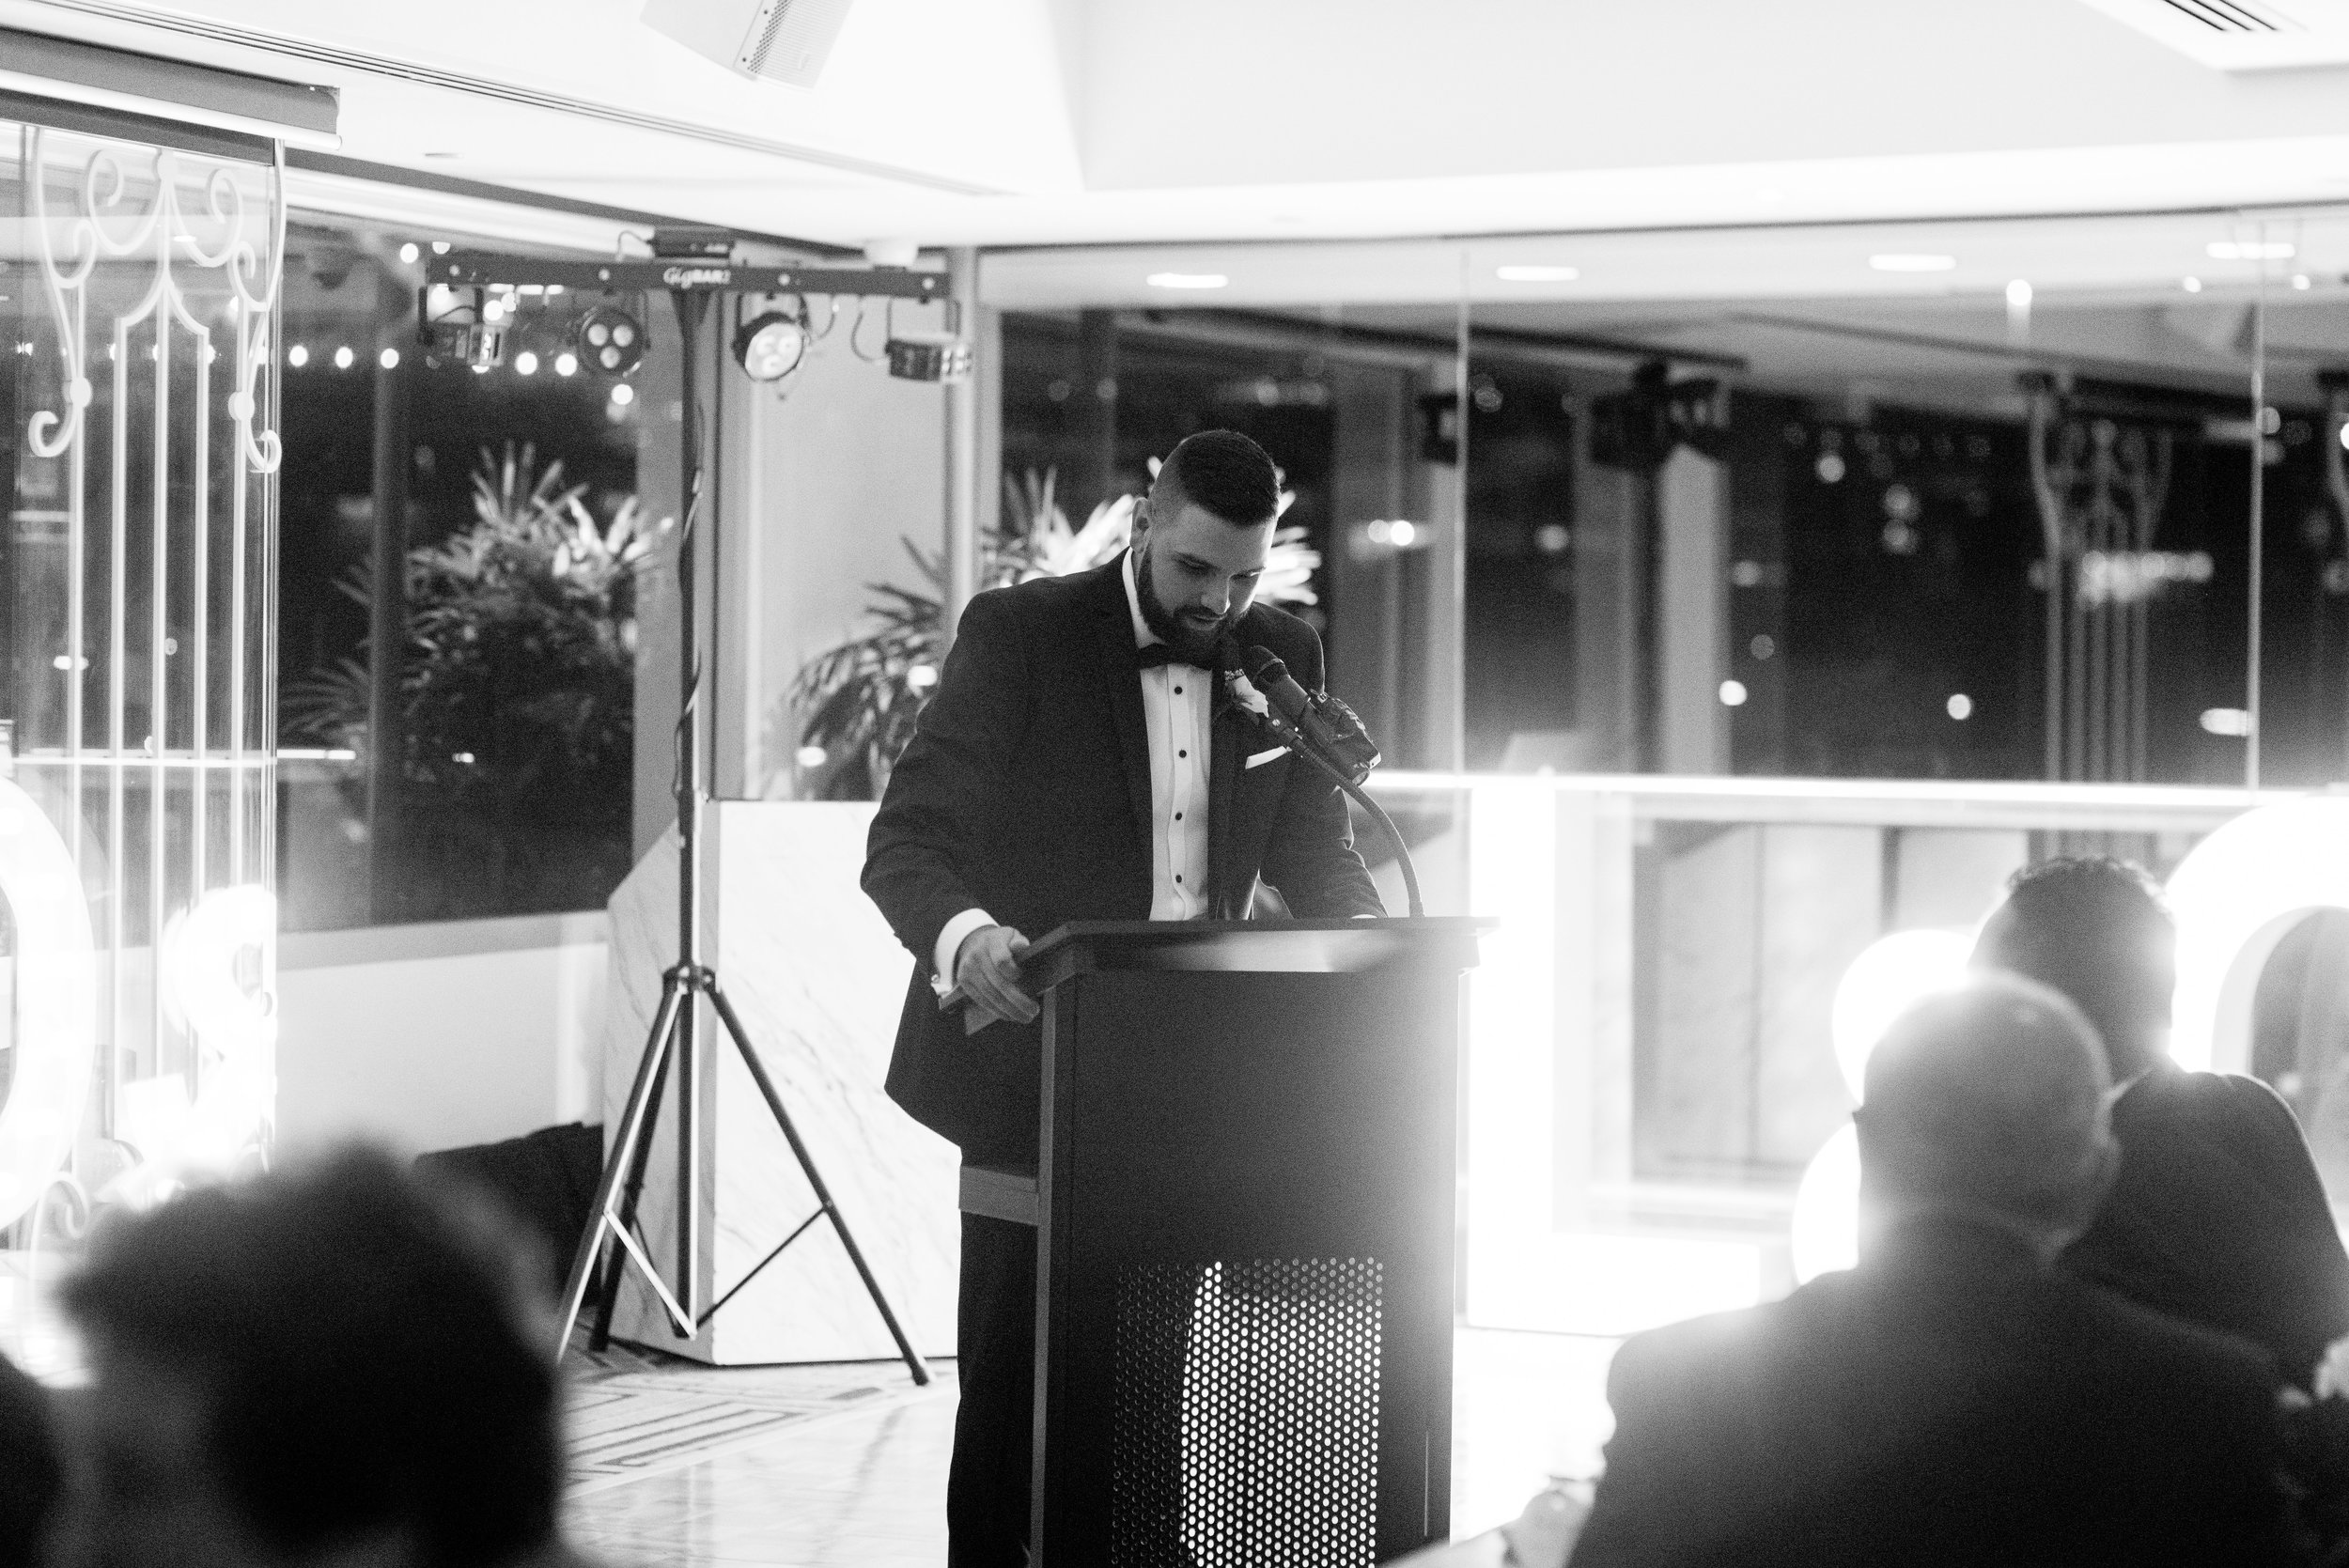 black-bird-brisbane-wedding-photography-film-photography-beautiful-reception-dance-candid-tweed-coast-wedding-167.jpg